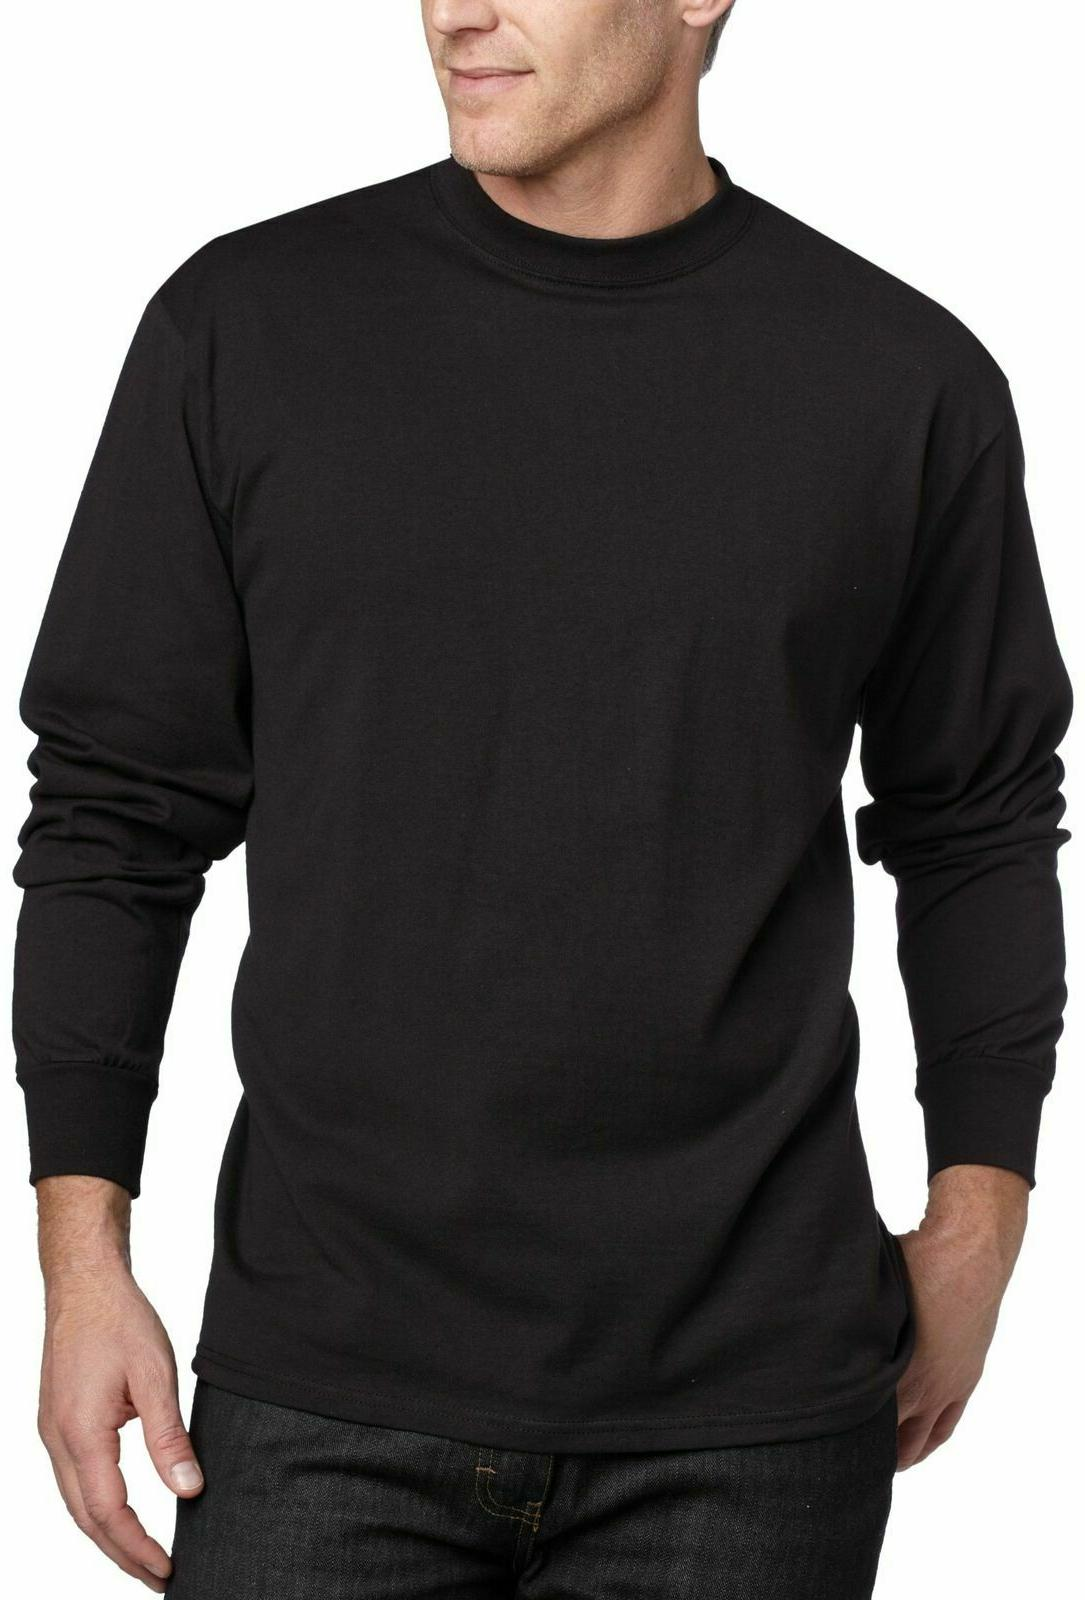 MJ Soffe Men's Long-Sleeve Cotton T-Shirt Black X-Large XL A